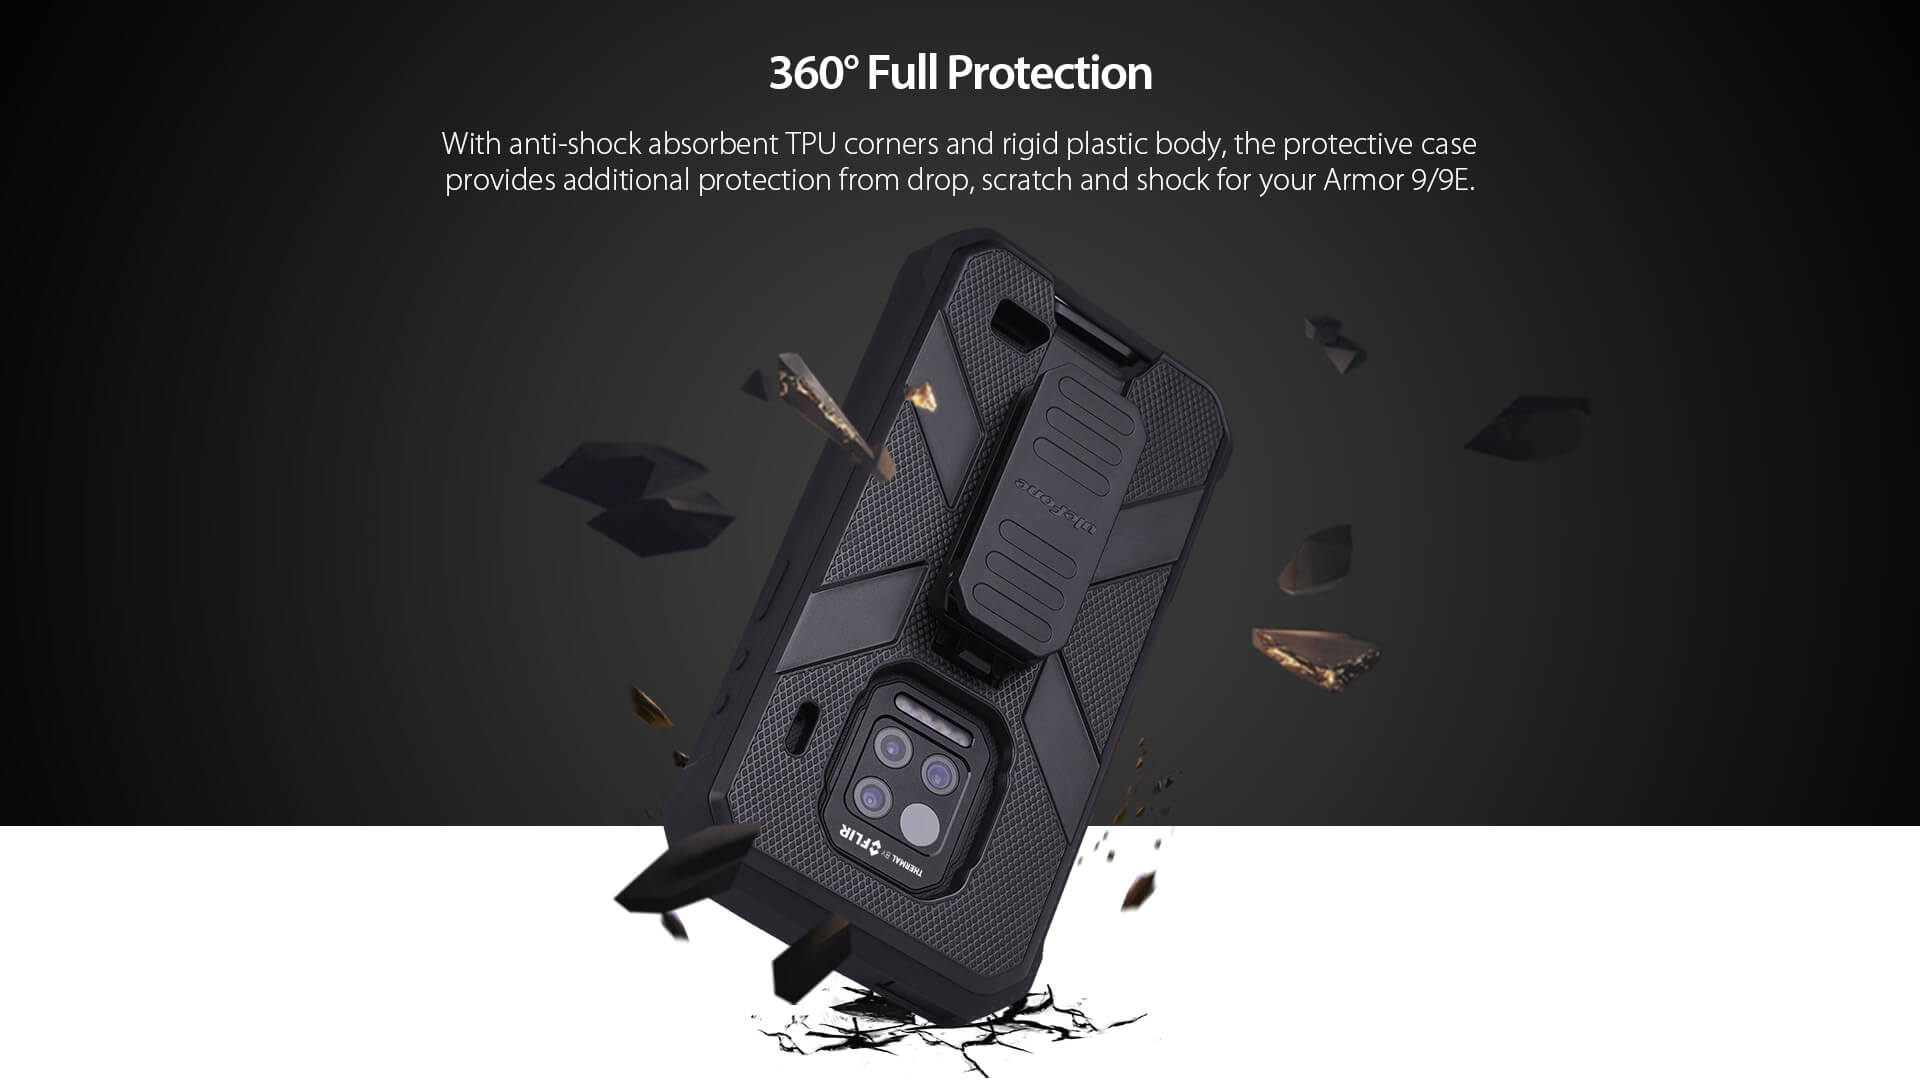 Rugged SA - UleFone Armor 9/9E Multifunctional Protective Case